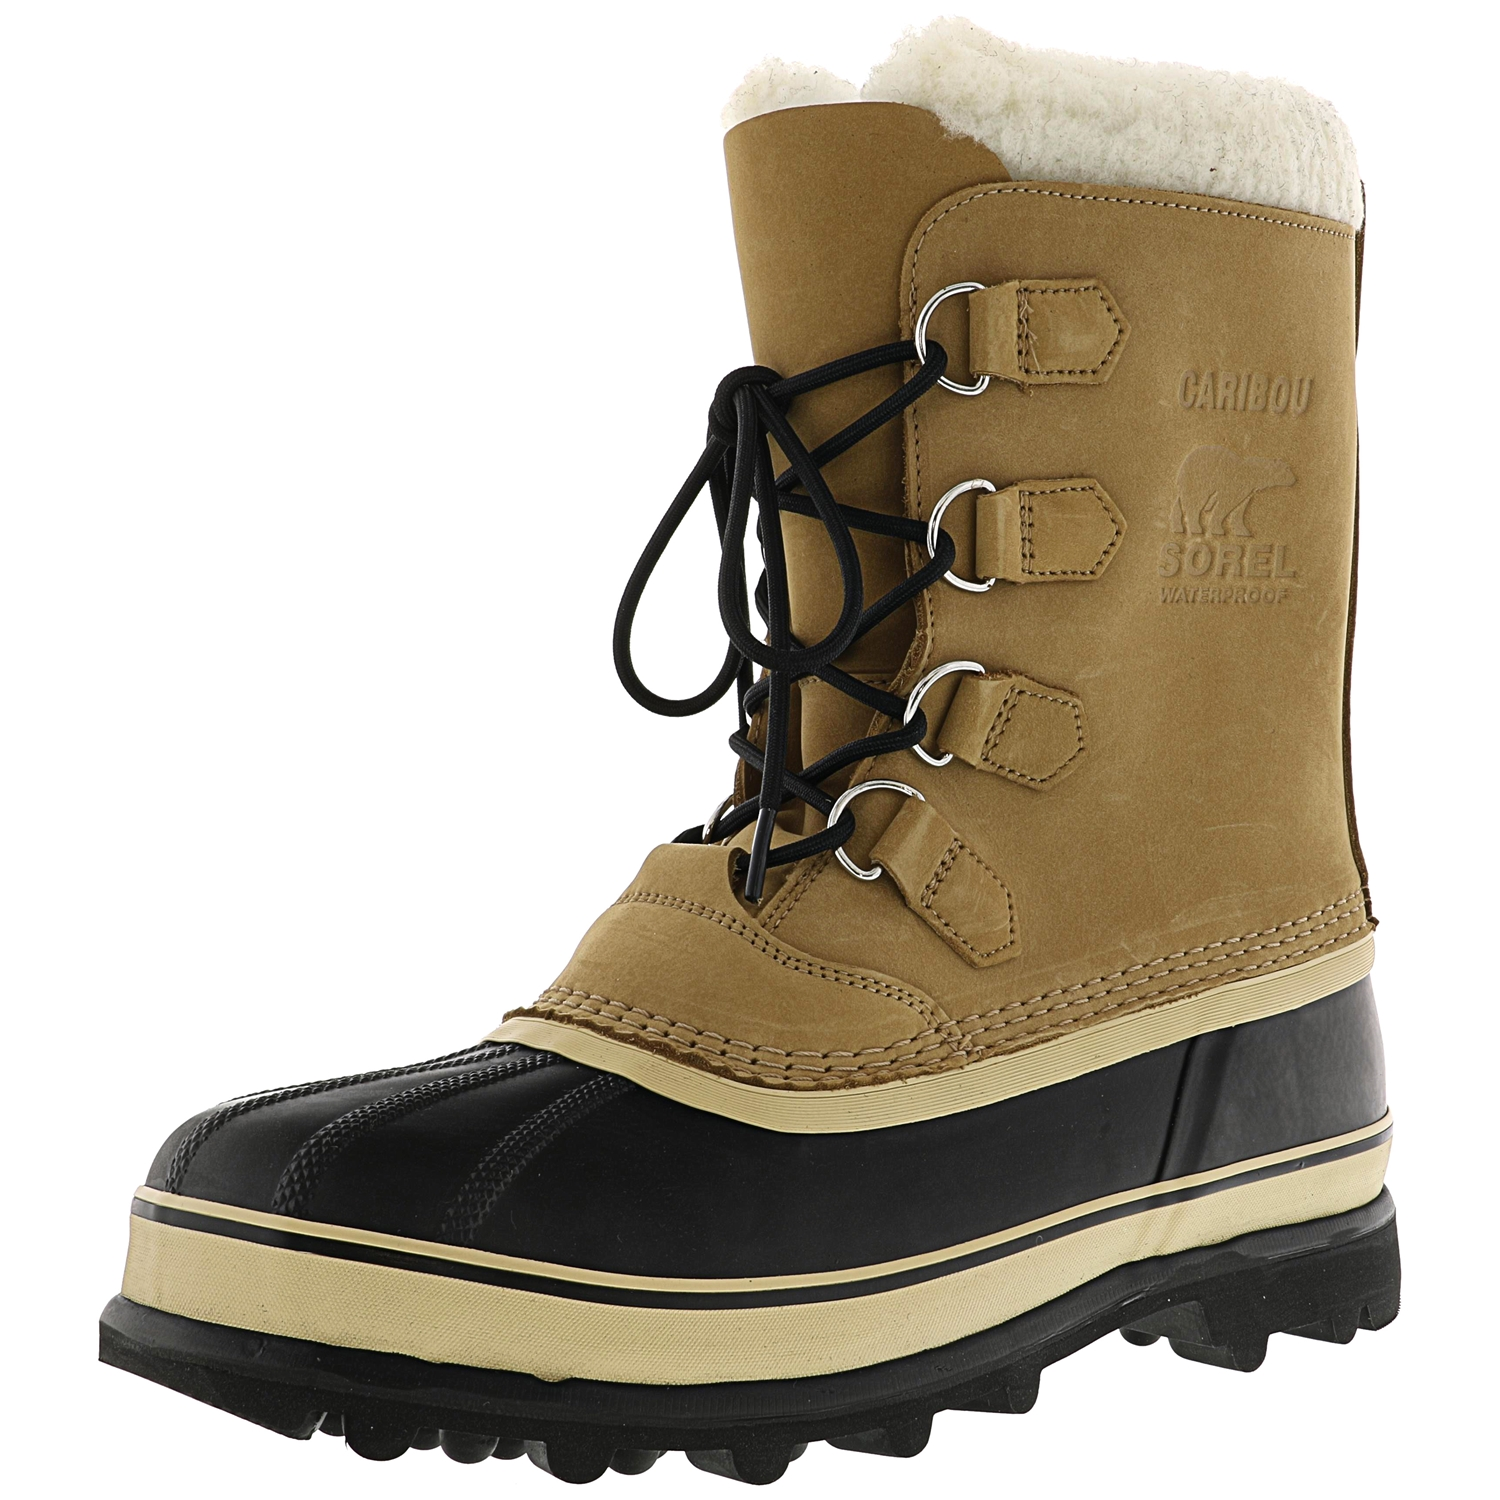 Sorel Men's Caribou Buff Ankle-High Leather Snow Boot - 12M